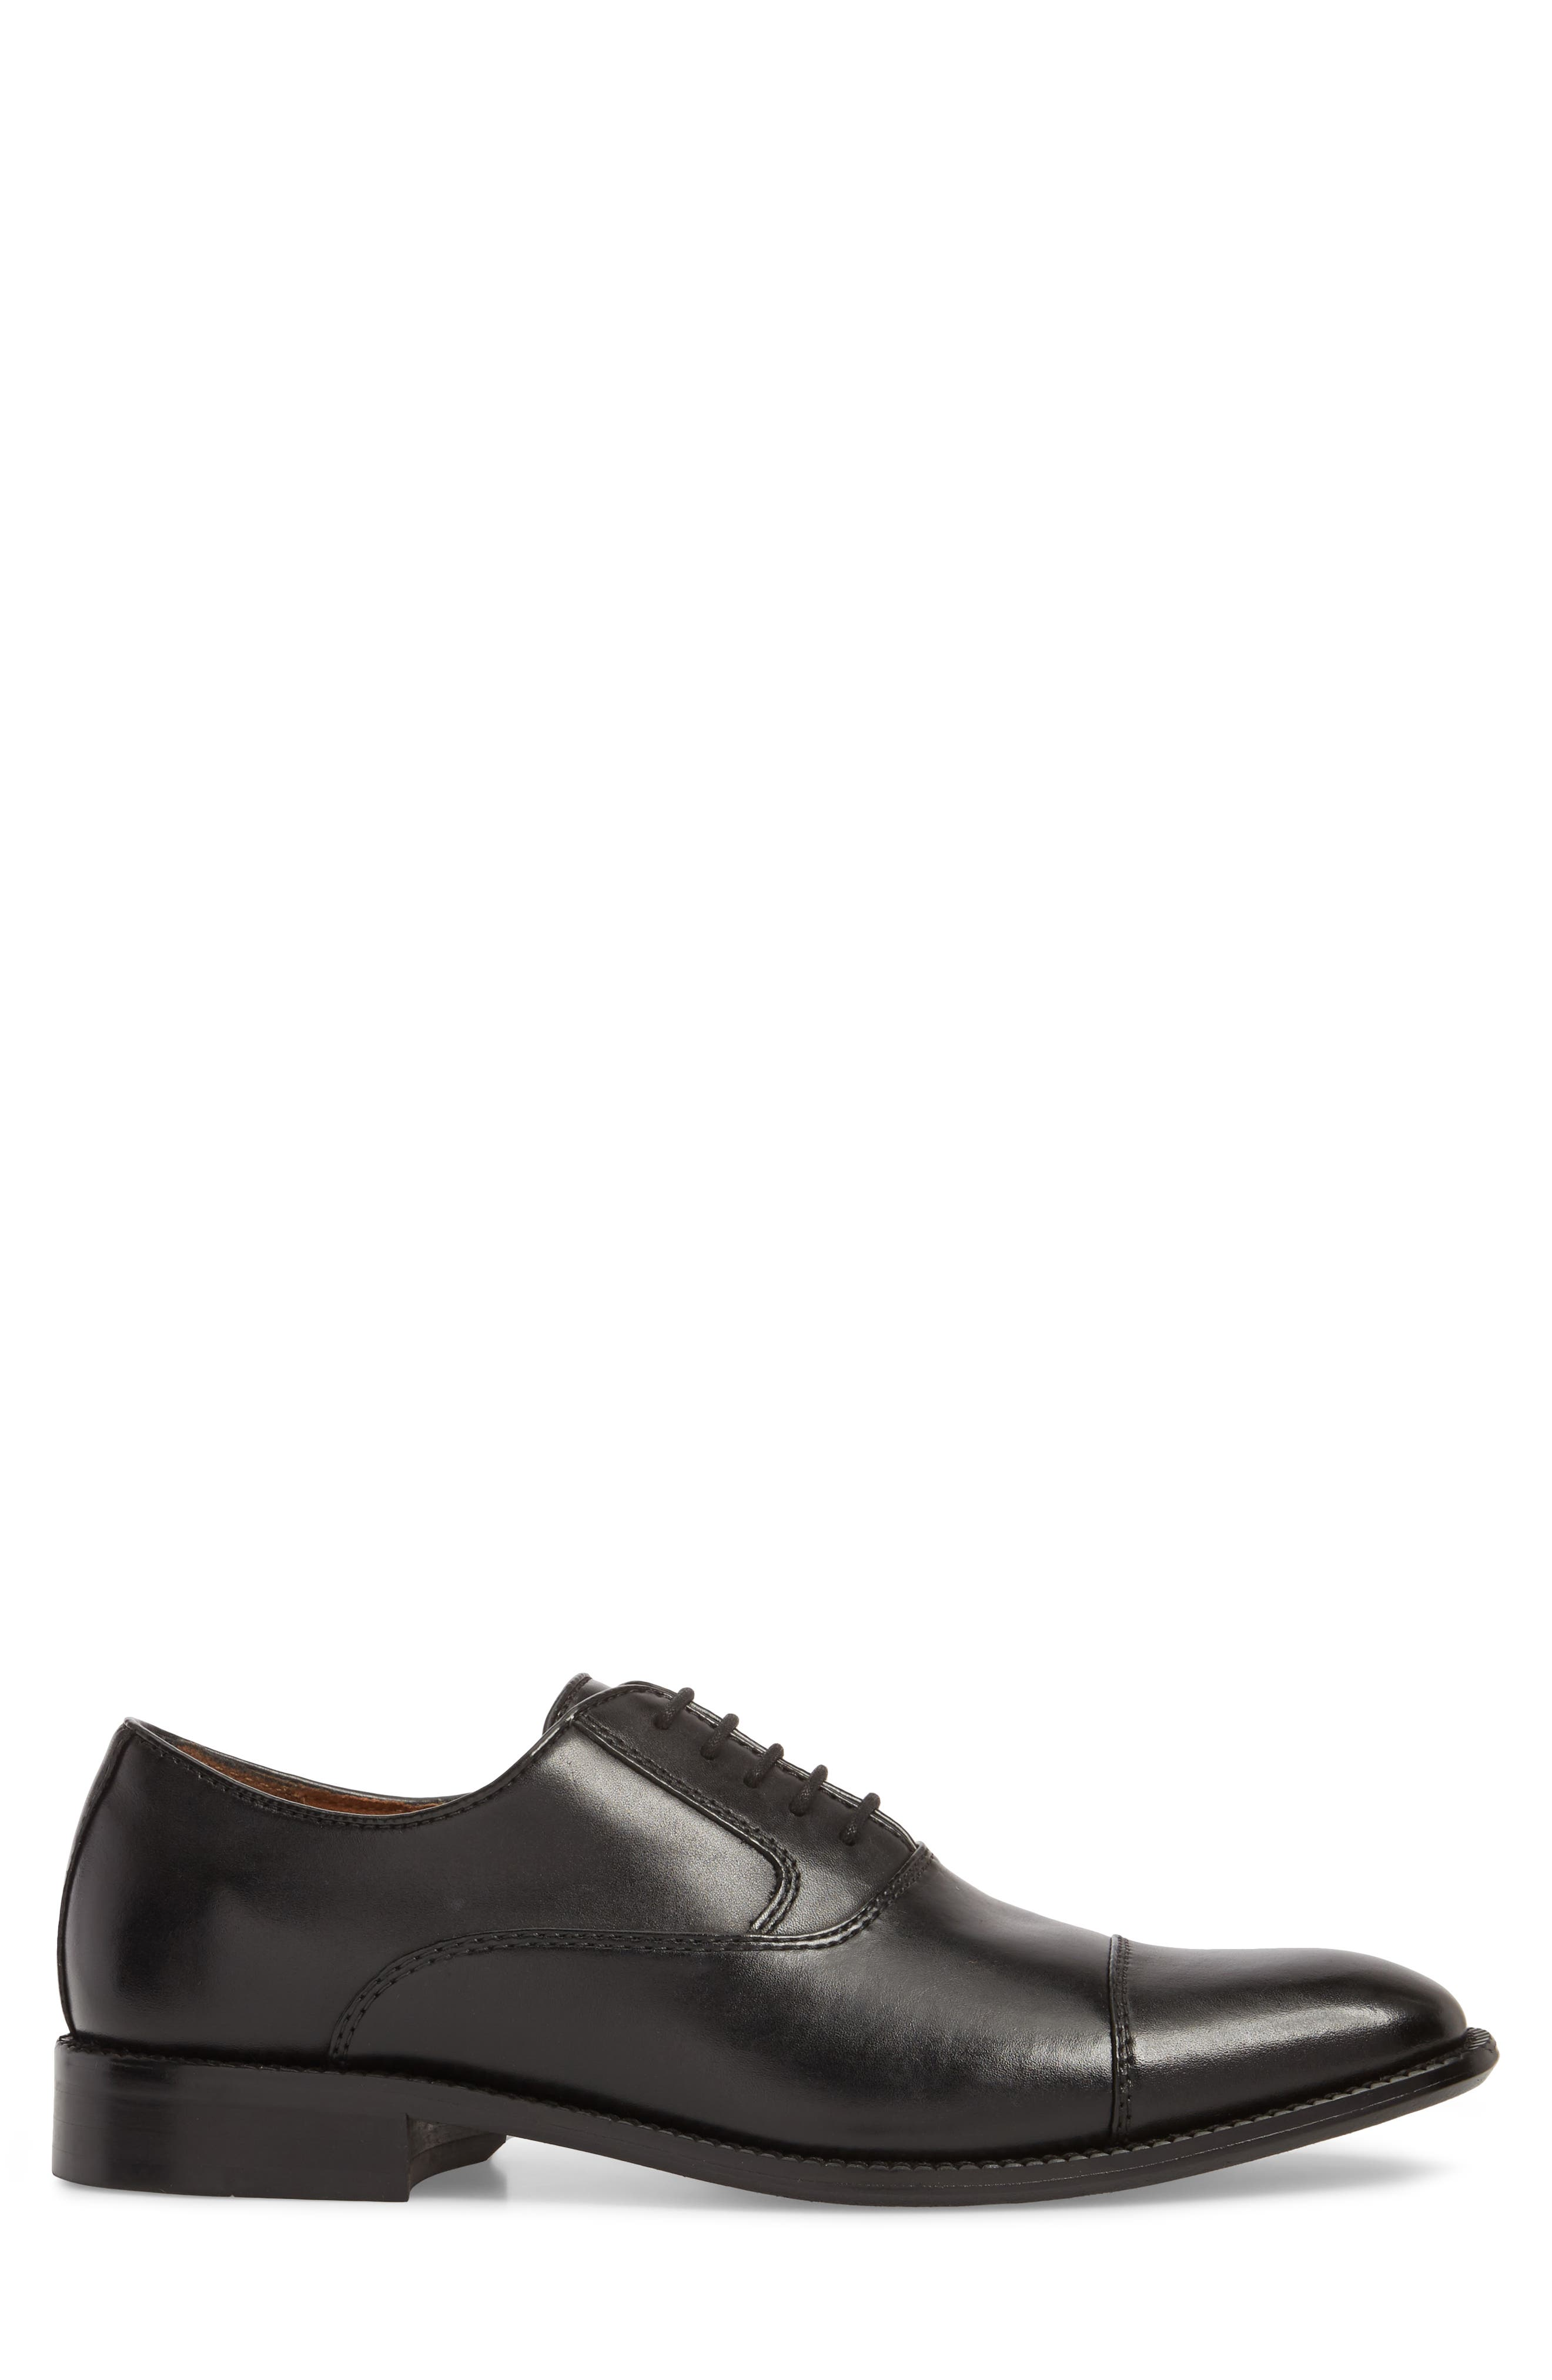 KENNETH COLE NEW YORK, Dice Cap Toe Oxford, Alternate thumbnail 3, color, BLACK LEATHER